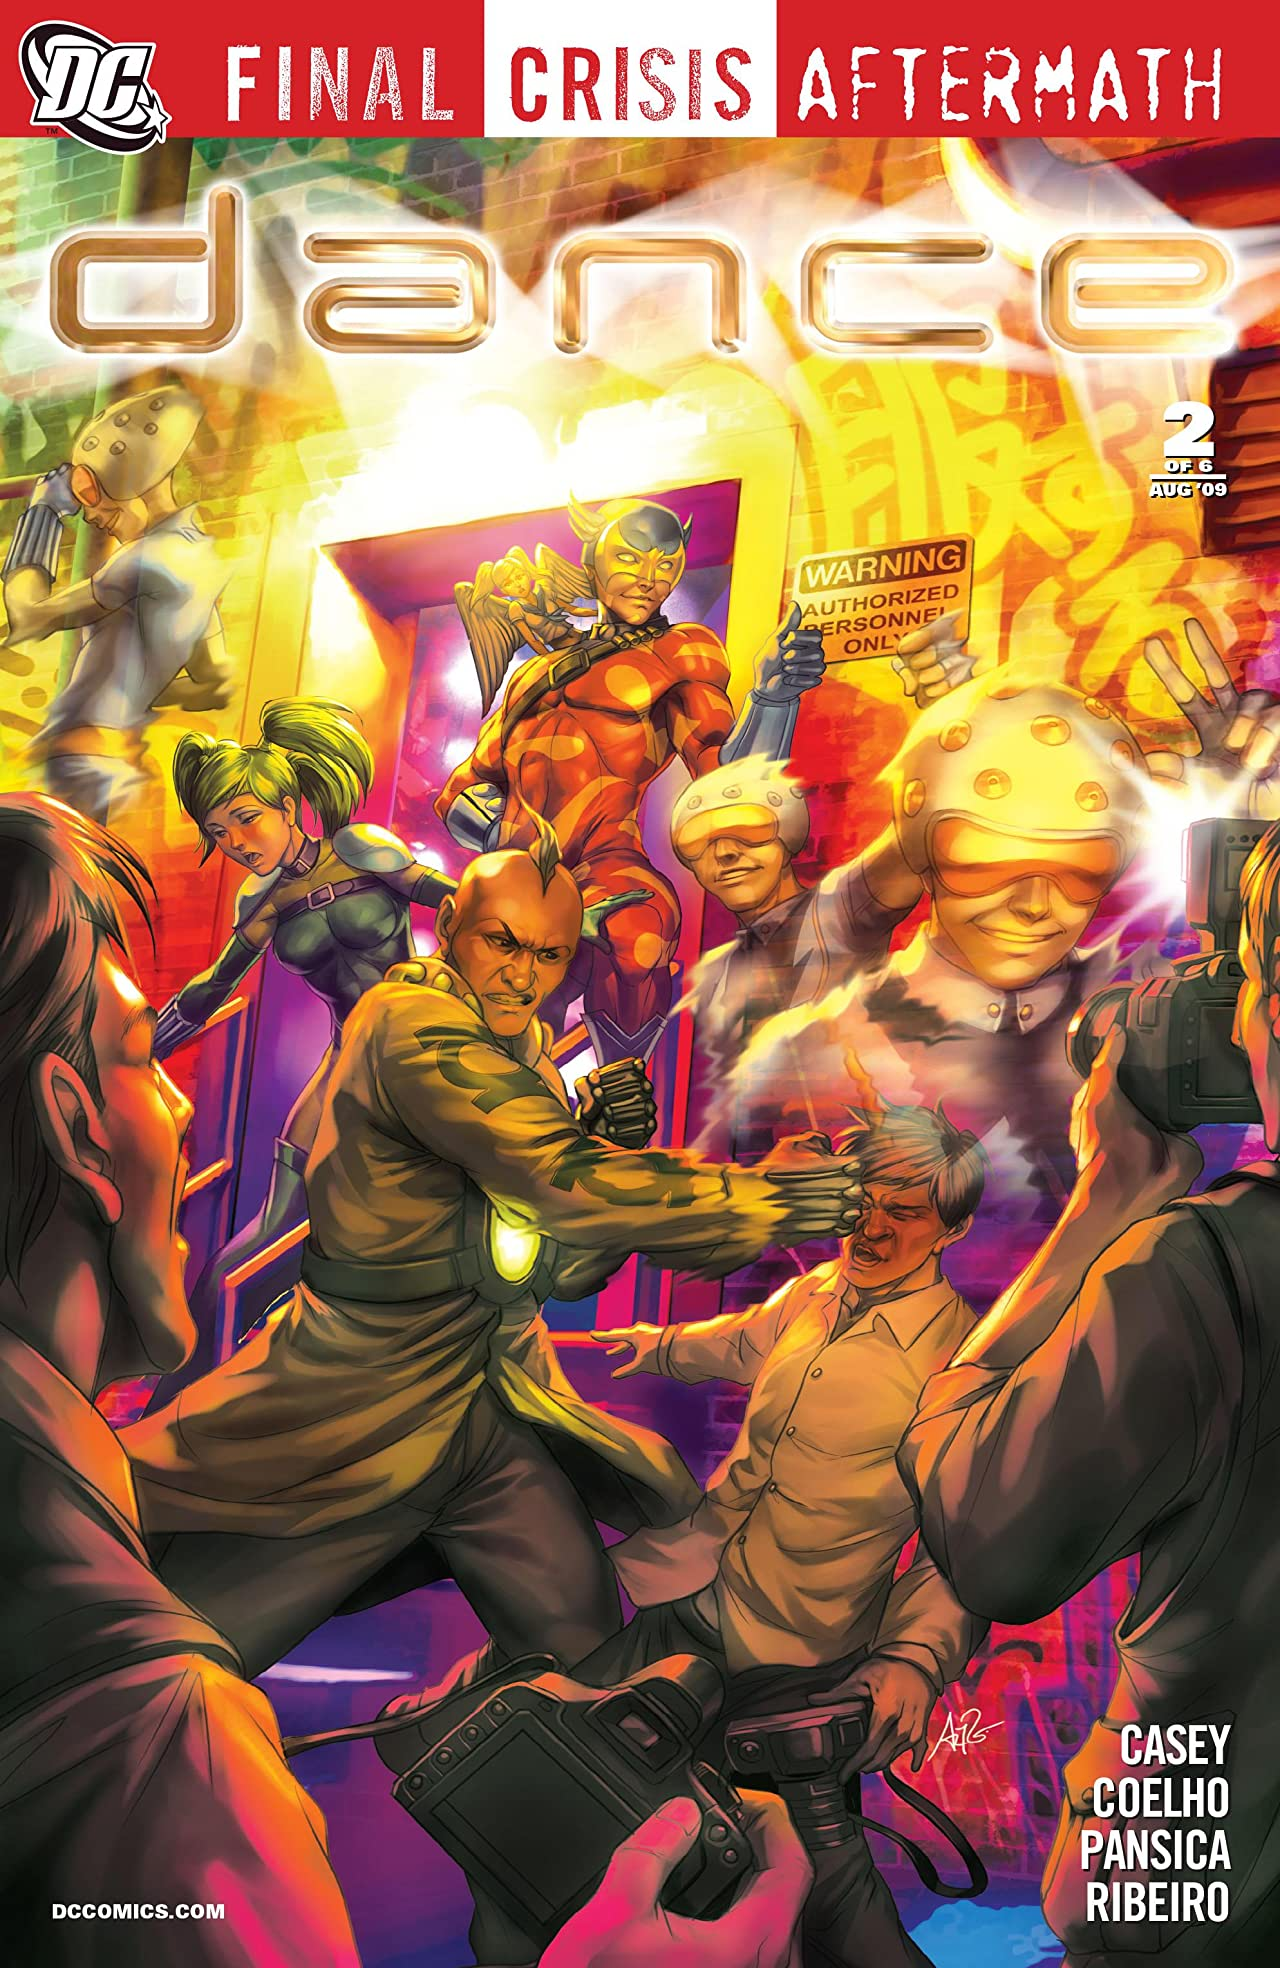 Final Crisis Aftermath: Dance (2009) #2